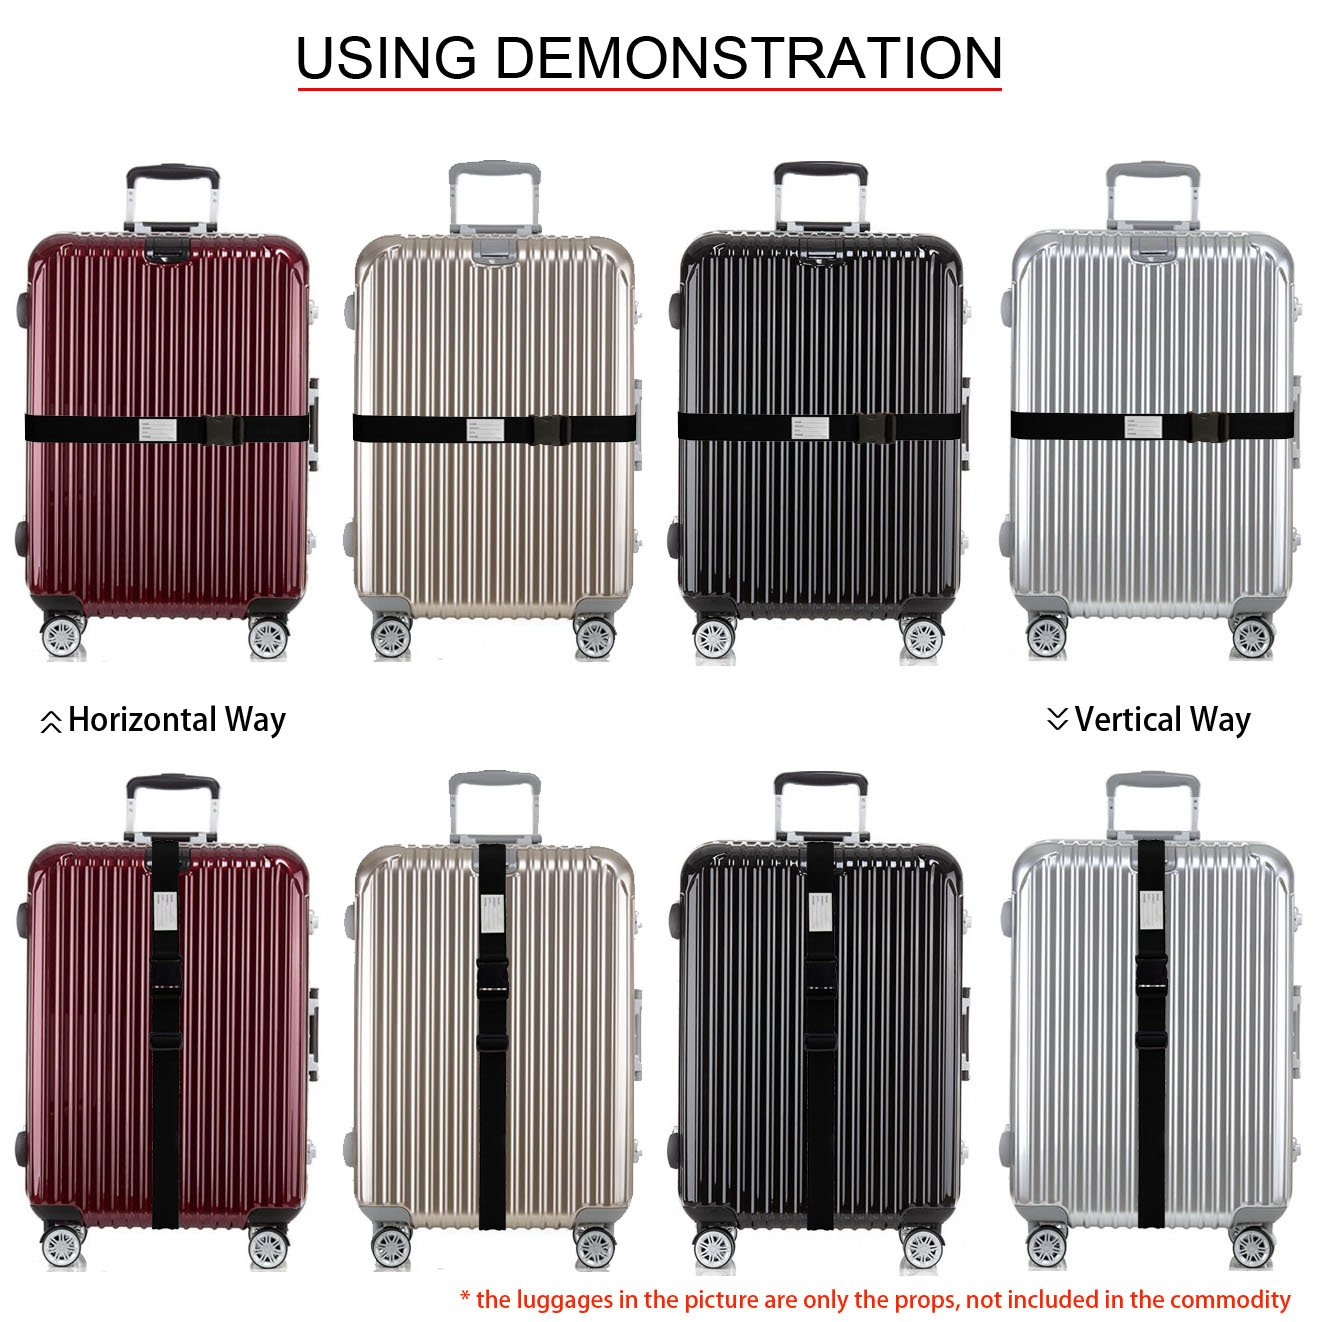 TRANVERS Luggage Strap For Suitcase Baggage Belt Travel Luggage Accessory 1-Pack Black by TRANVERS (Image #3)